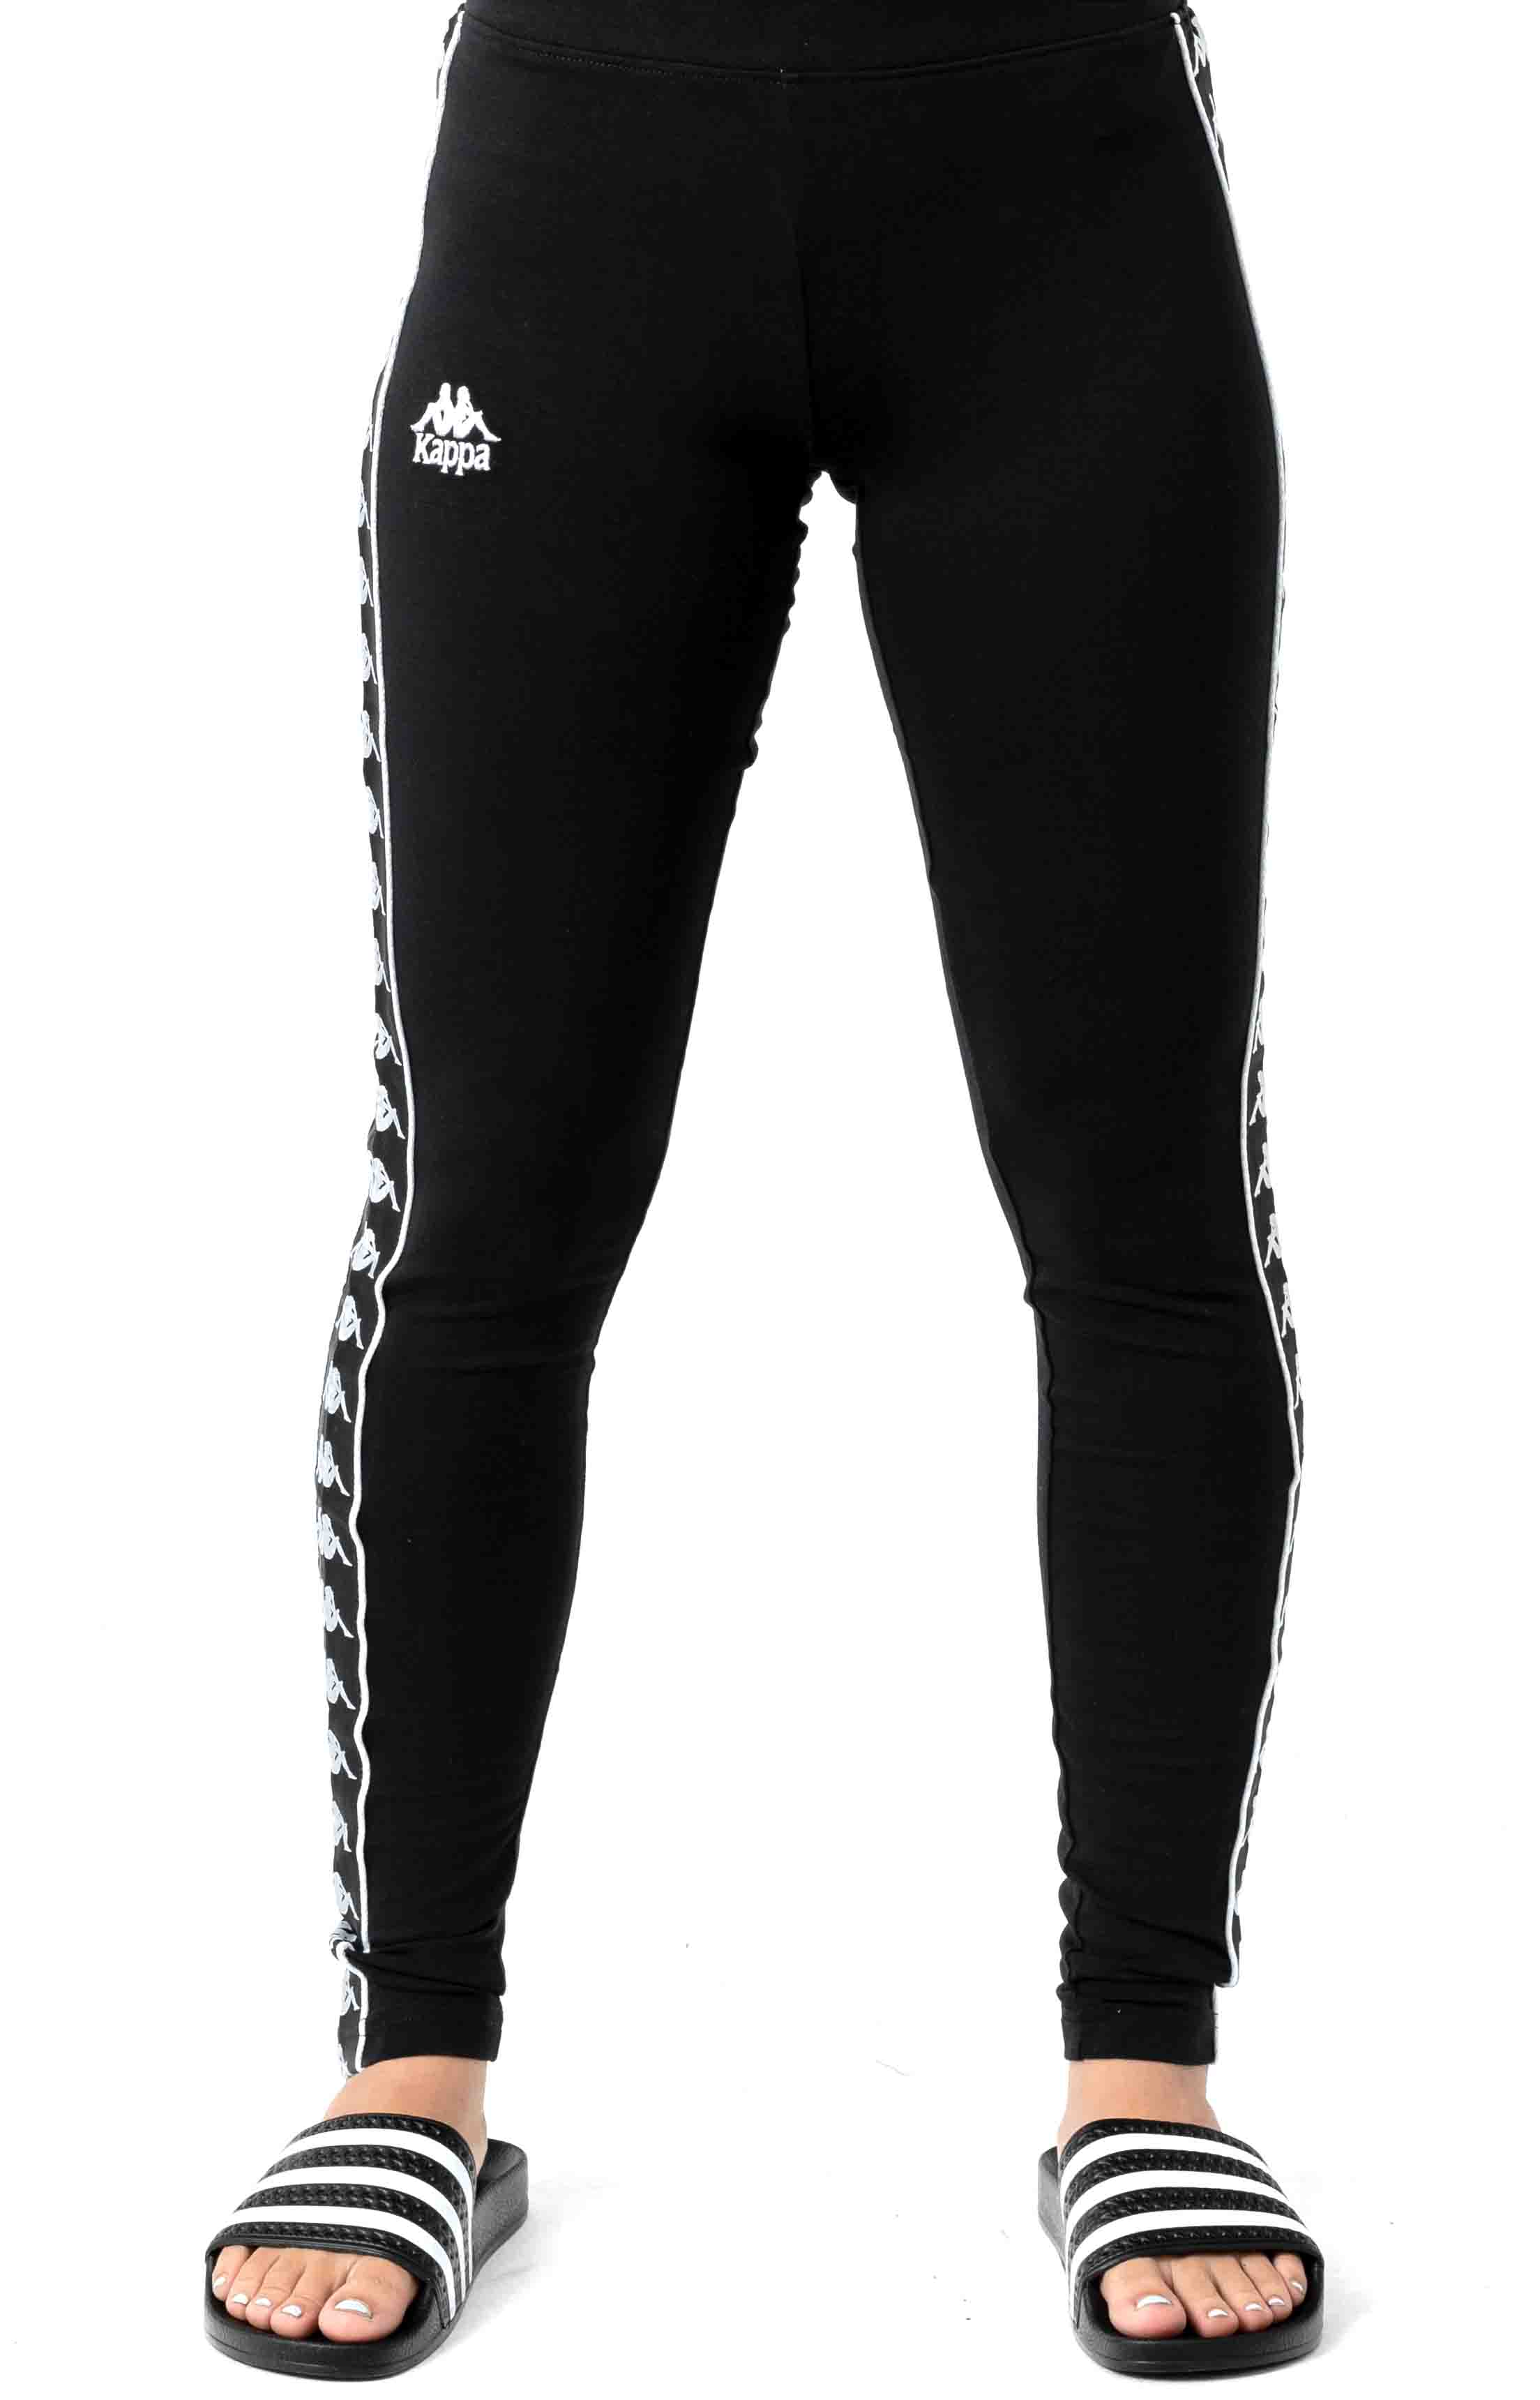 222 Banda Anen Leggings - Black/Black 2